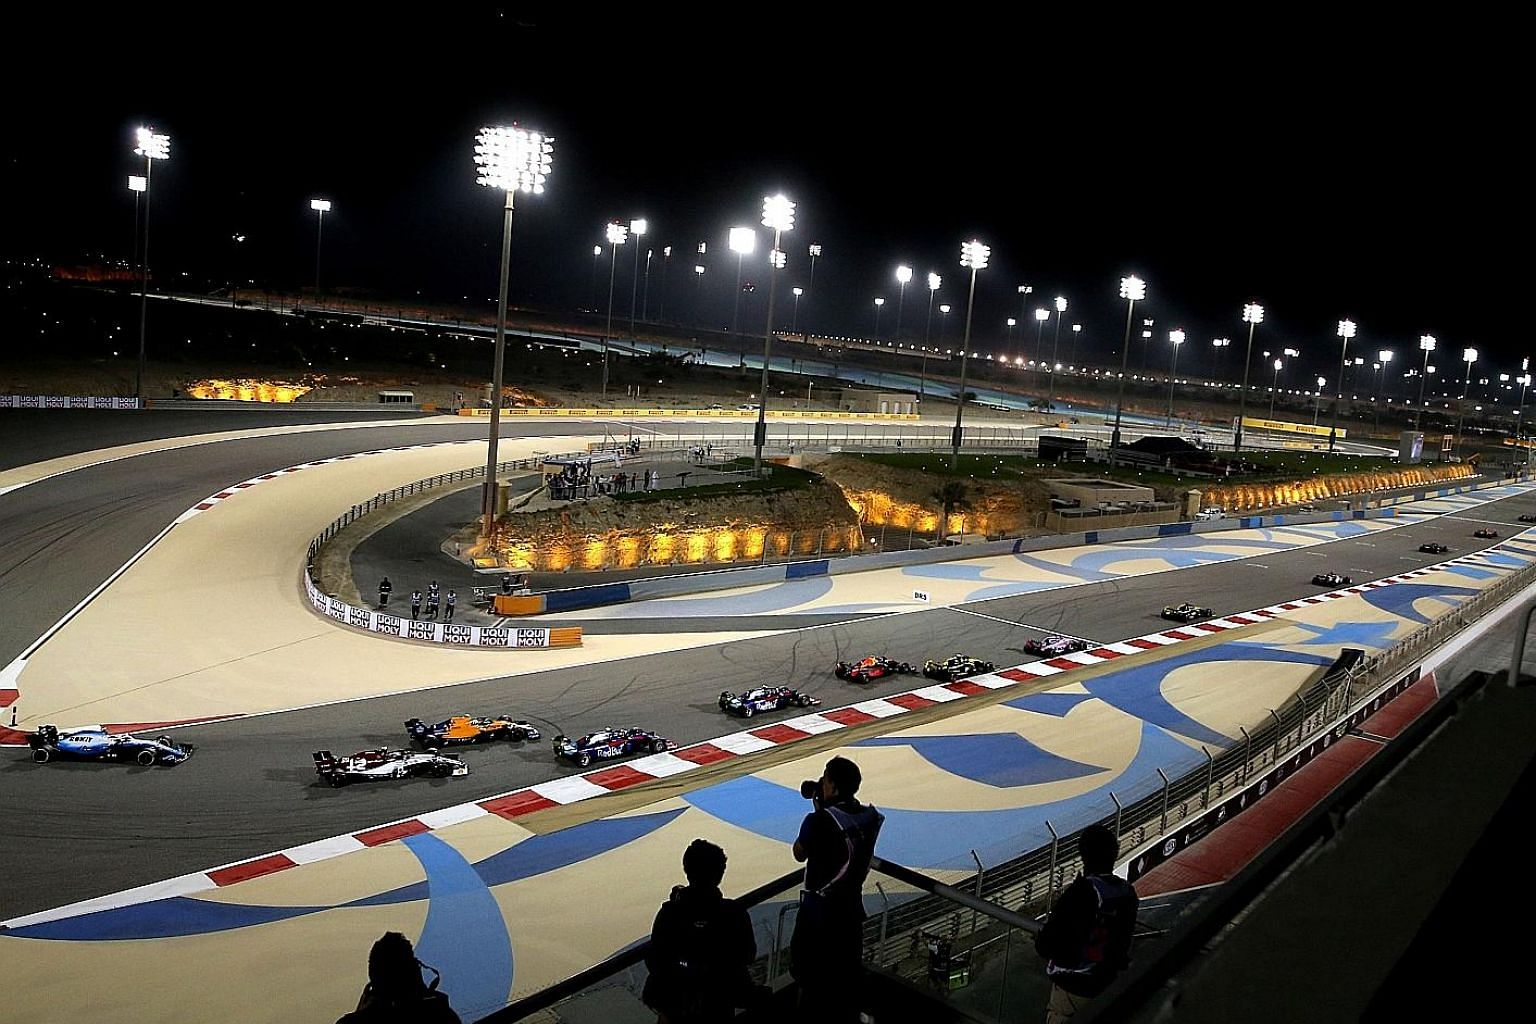 The Bahrain Formula One Grand Prix, held from March 20 to 22 in its capital Manama, is the country's biggest sporting event, drawing a record crowd of 97,000 over three days last year. The Chinese Grand Prix in Shanghai initially scheduled for April